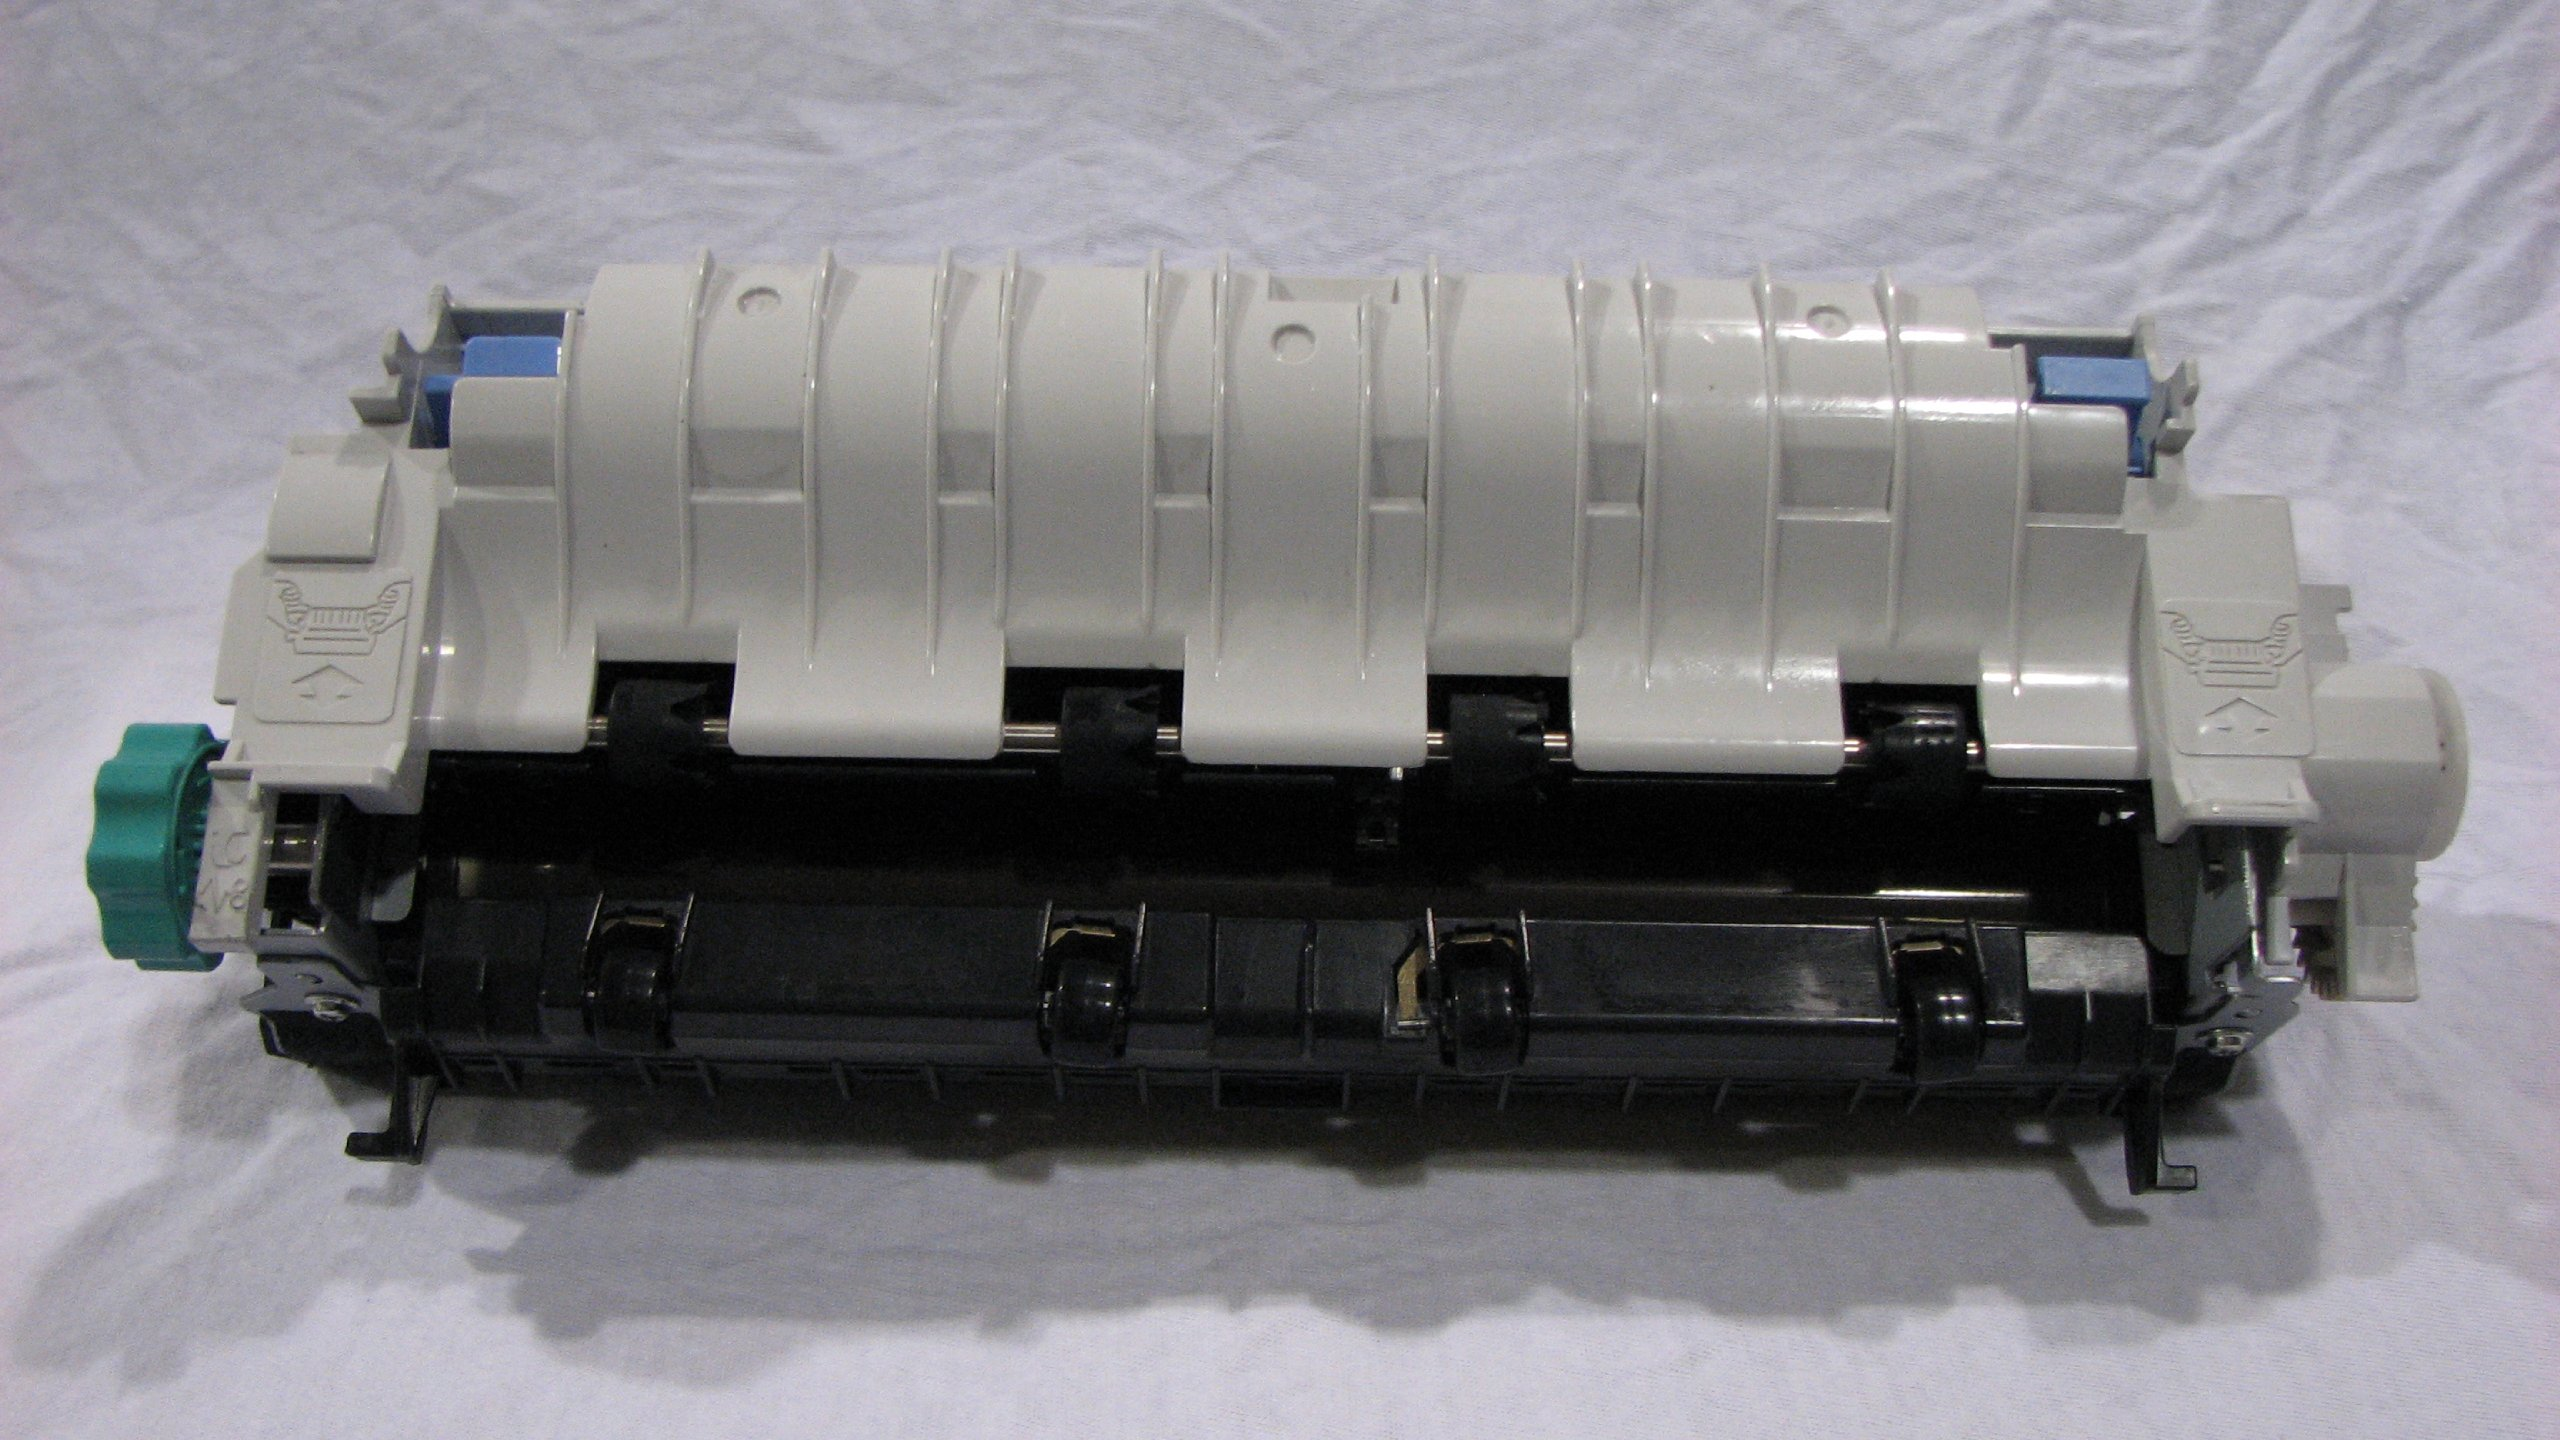 HP LaserJet 4240/4250/4350 Series Fusing Assembly RM1-1082 REMANUFACTURED by HP